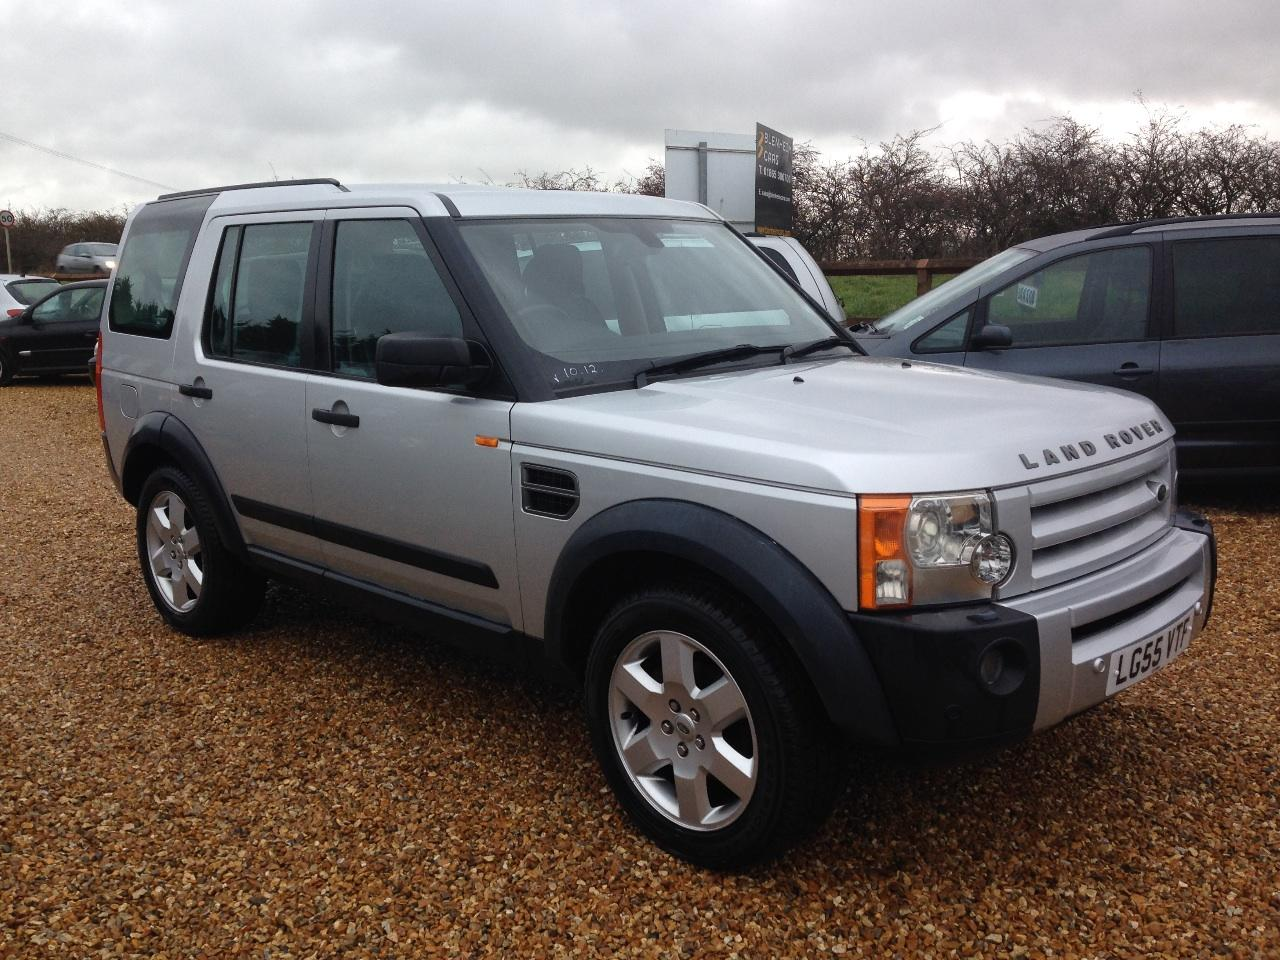 Land Rover Discovery 2.7 Td V6 HSE 5DR AUTO EXCELLENT CONDITION FULL SERVICE HISTORY SAT NAV LEATHER Four Wheel Drive Diesel Silver